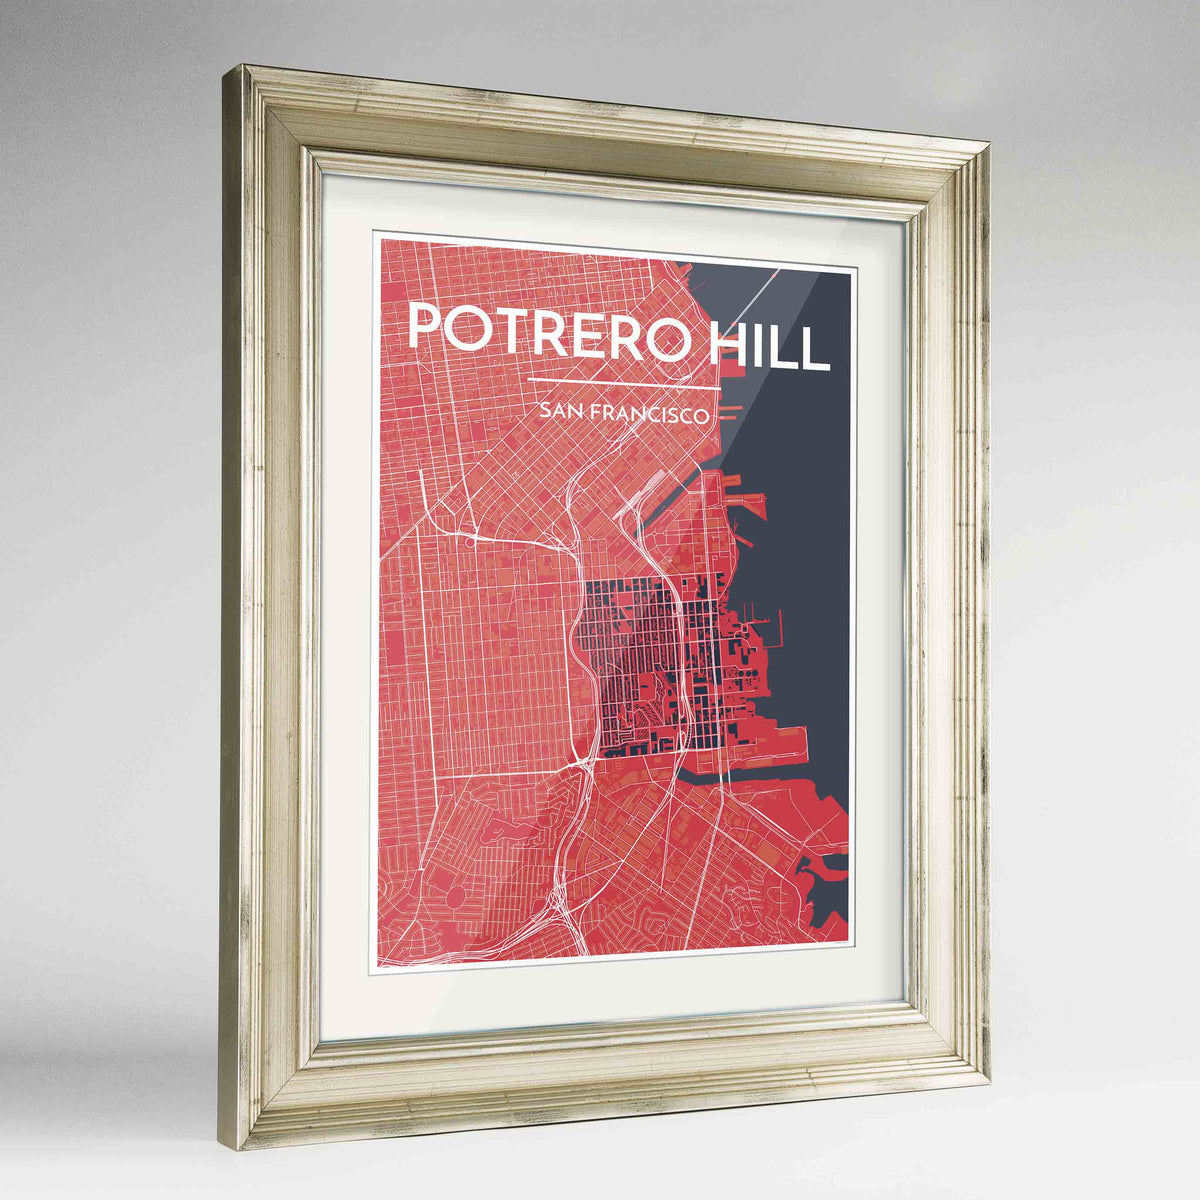 "Framed Potrero Hill San Francisco Map Art Print 24x36"" Champagne frame Point Two Design Group"